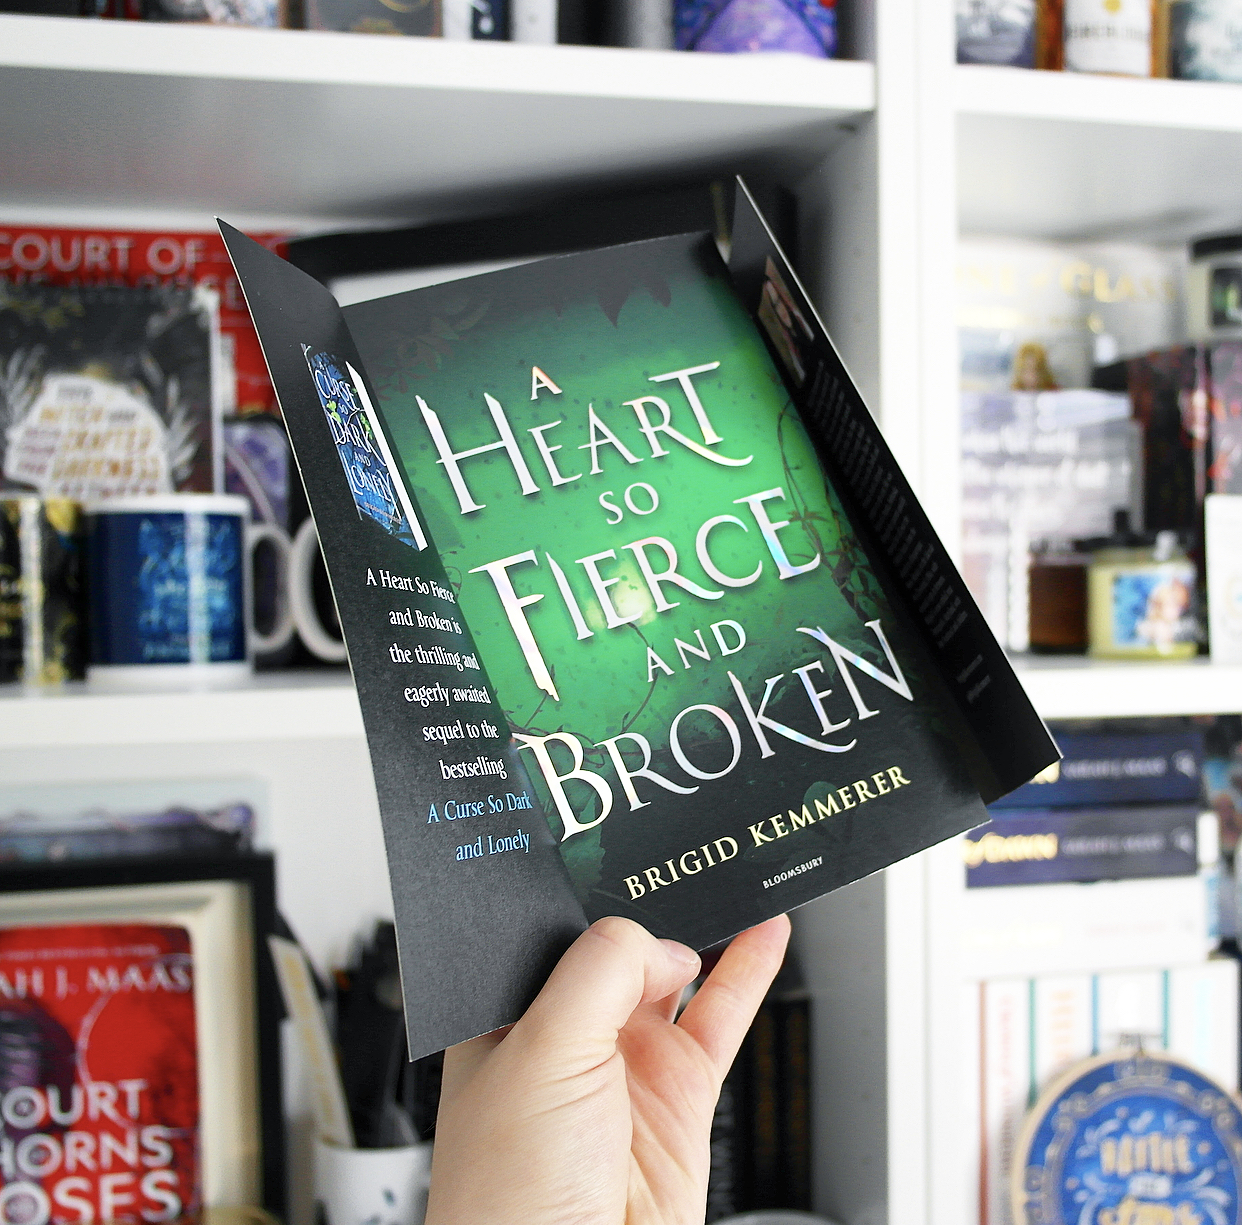 Non Spoiler Review: A Heart So Fierce and Broken by Brigid Kemmerer